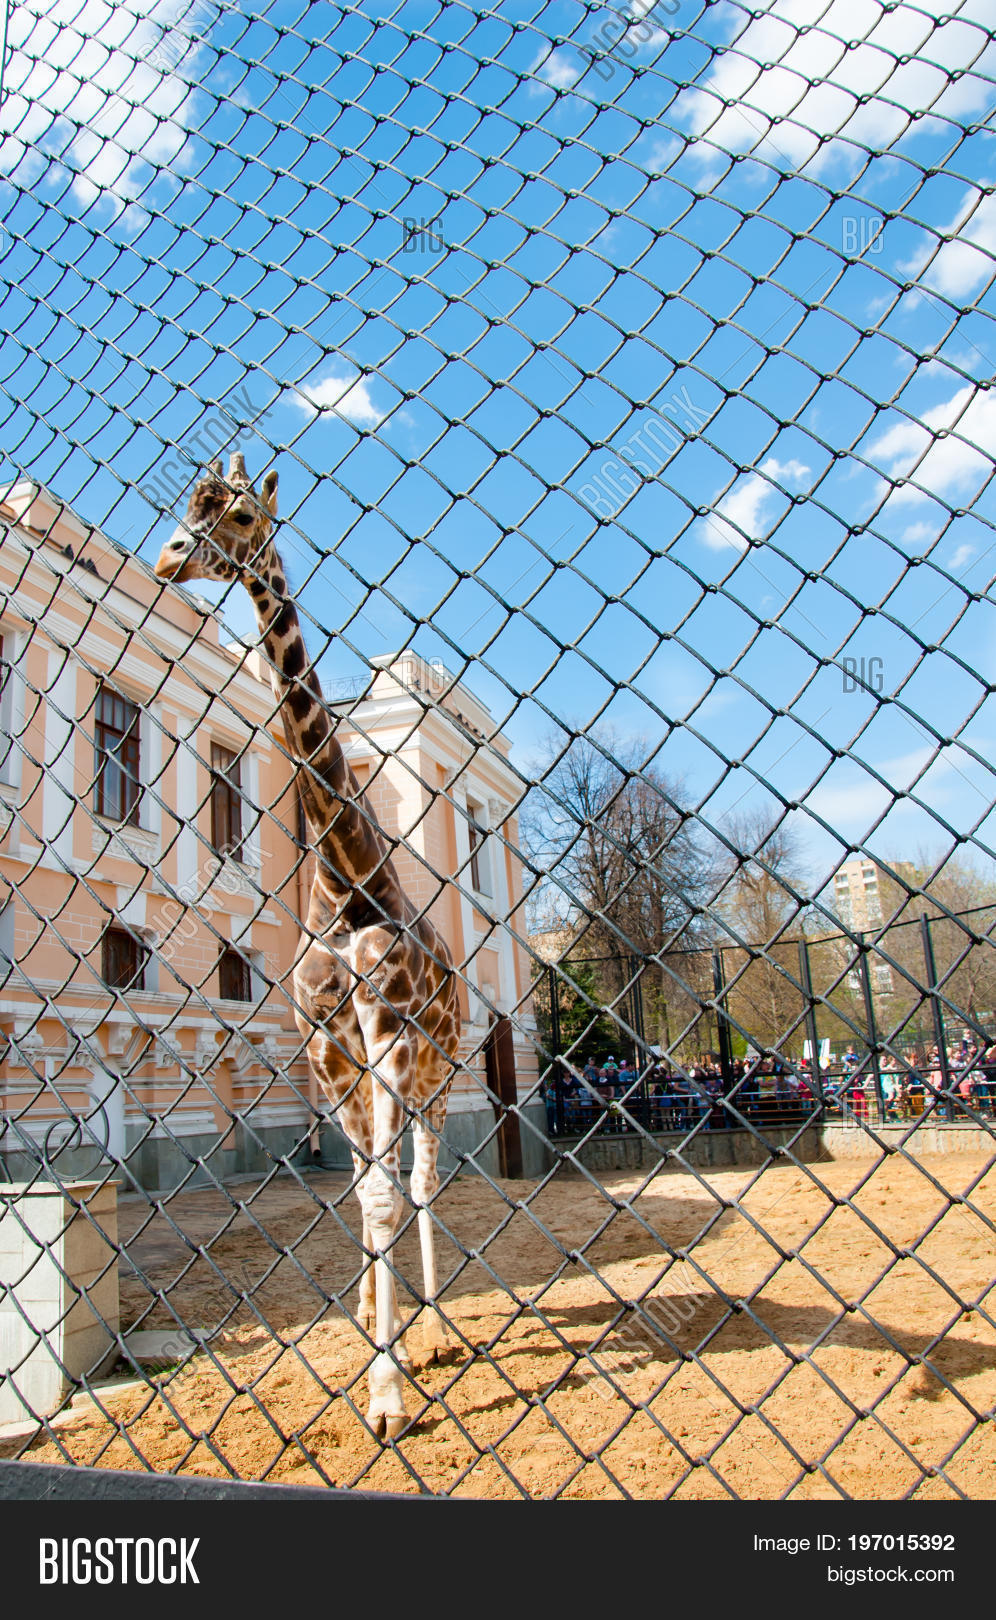 Zoos of Russia: a selection of sites